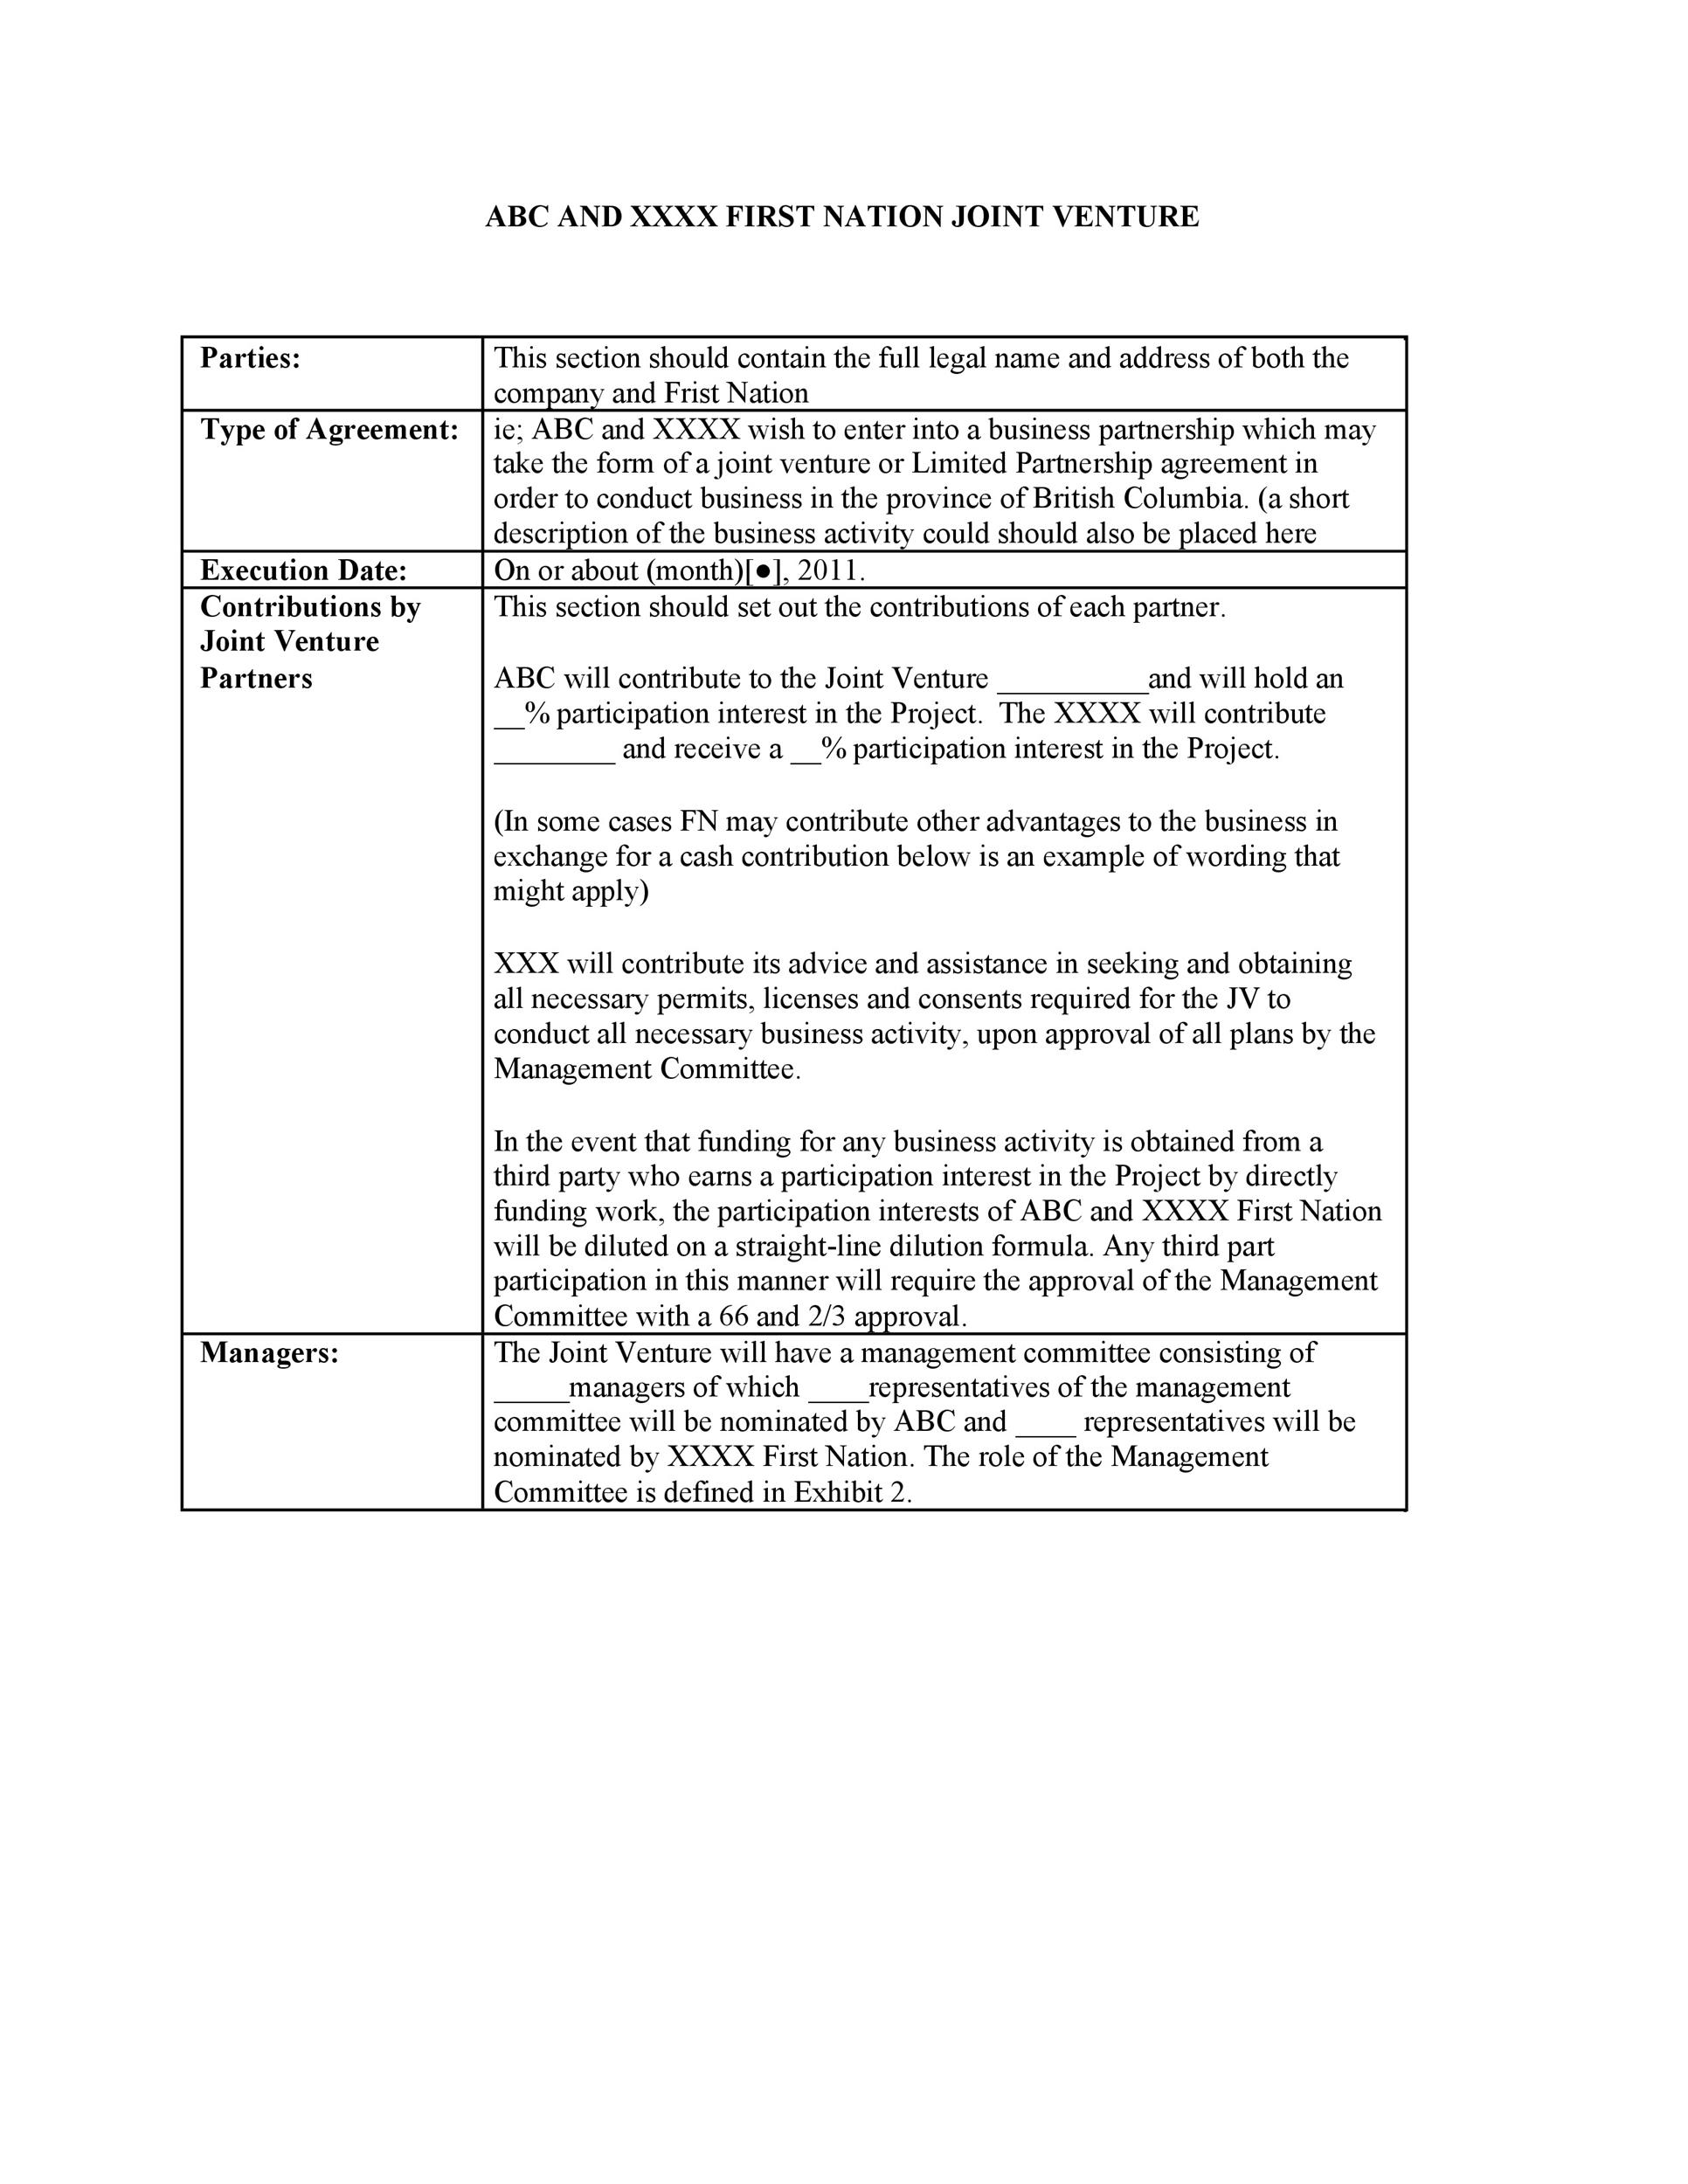 joint venture template - wowcircle - joint venture agreement sample word format